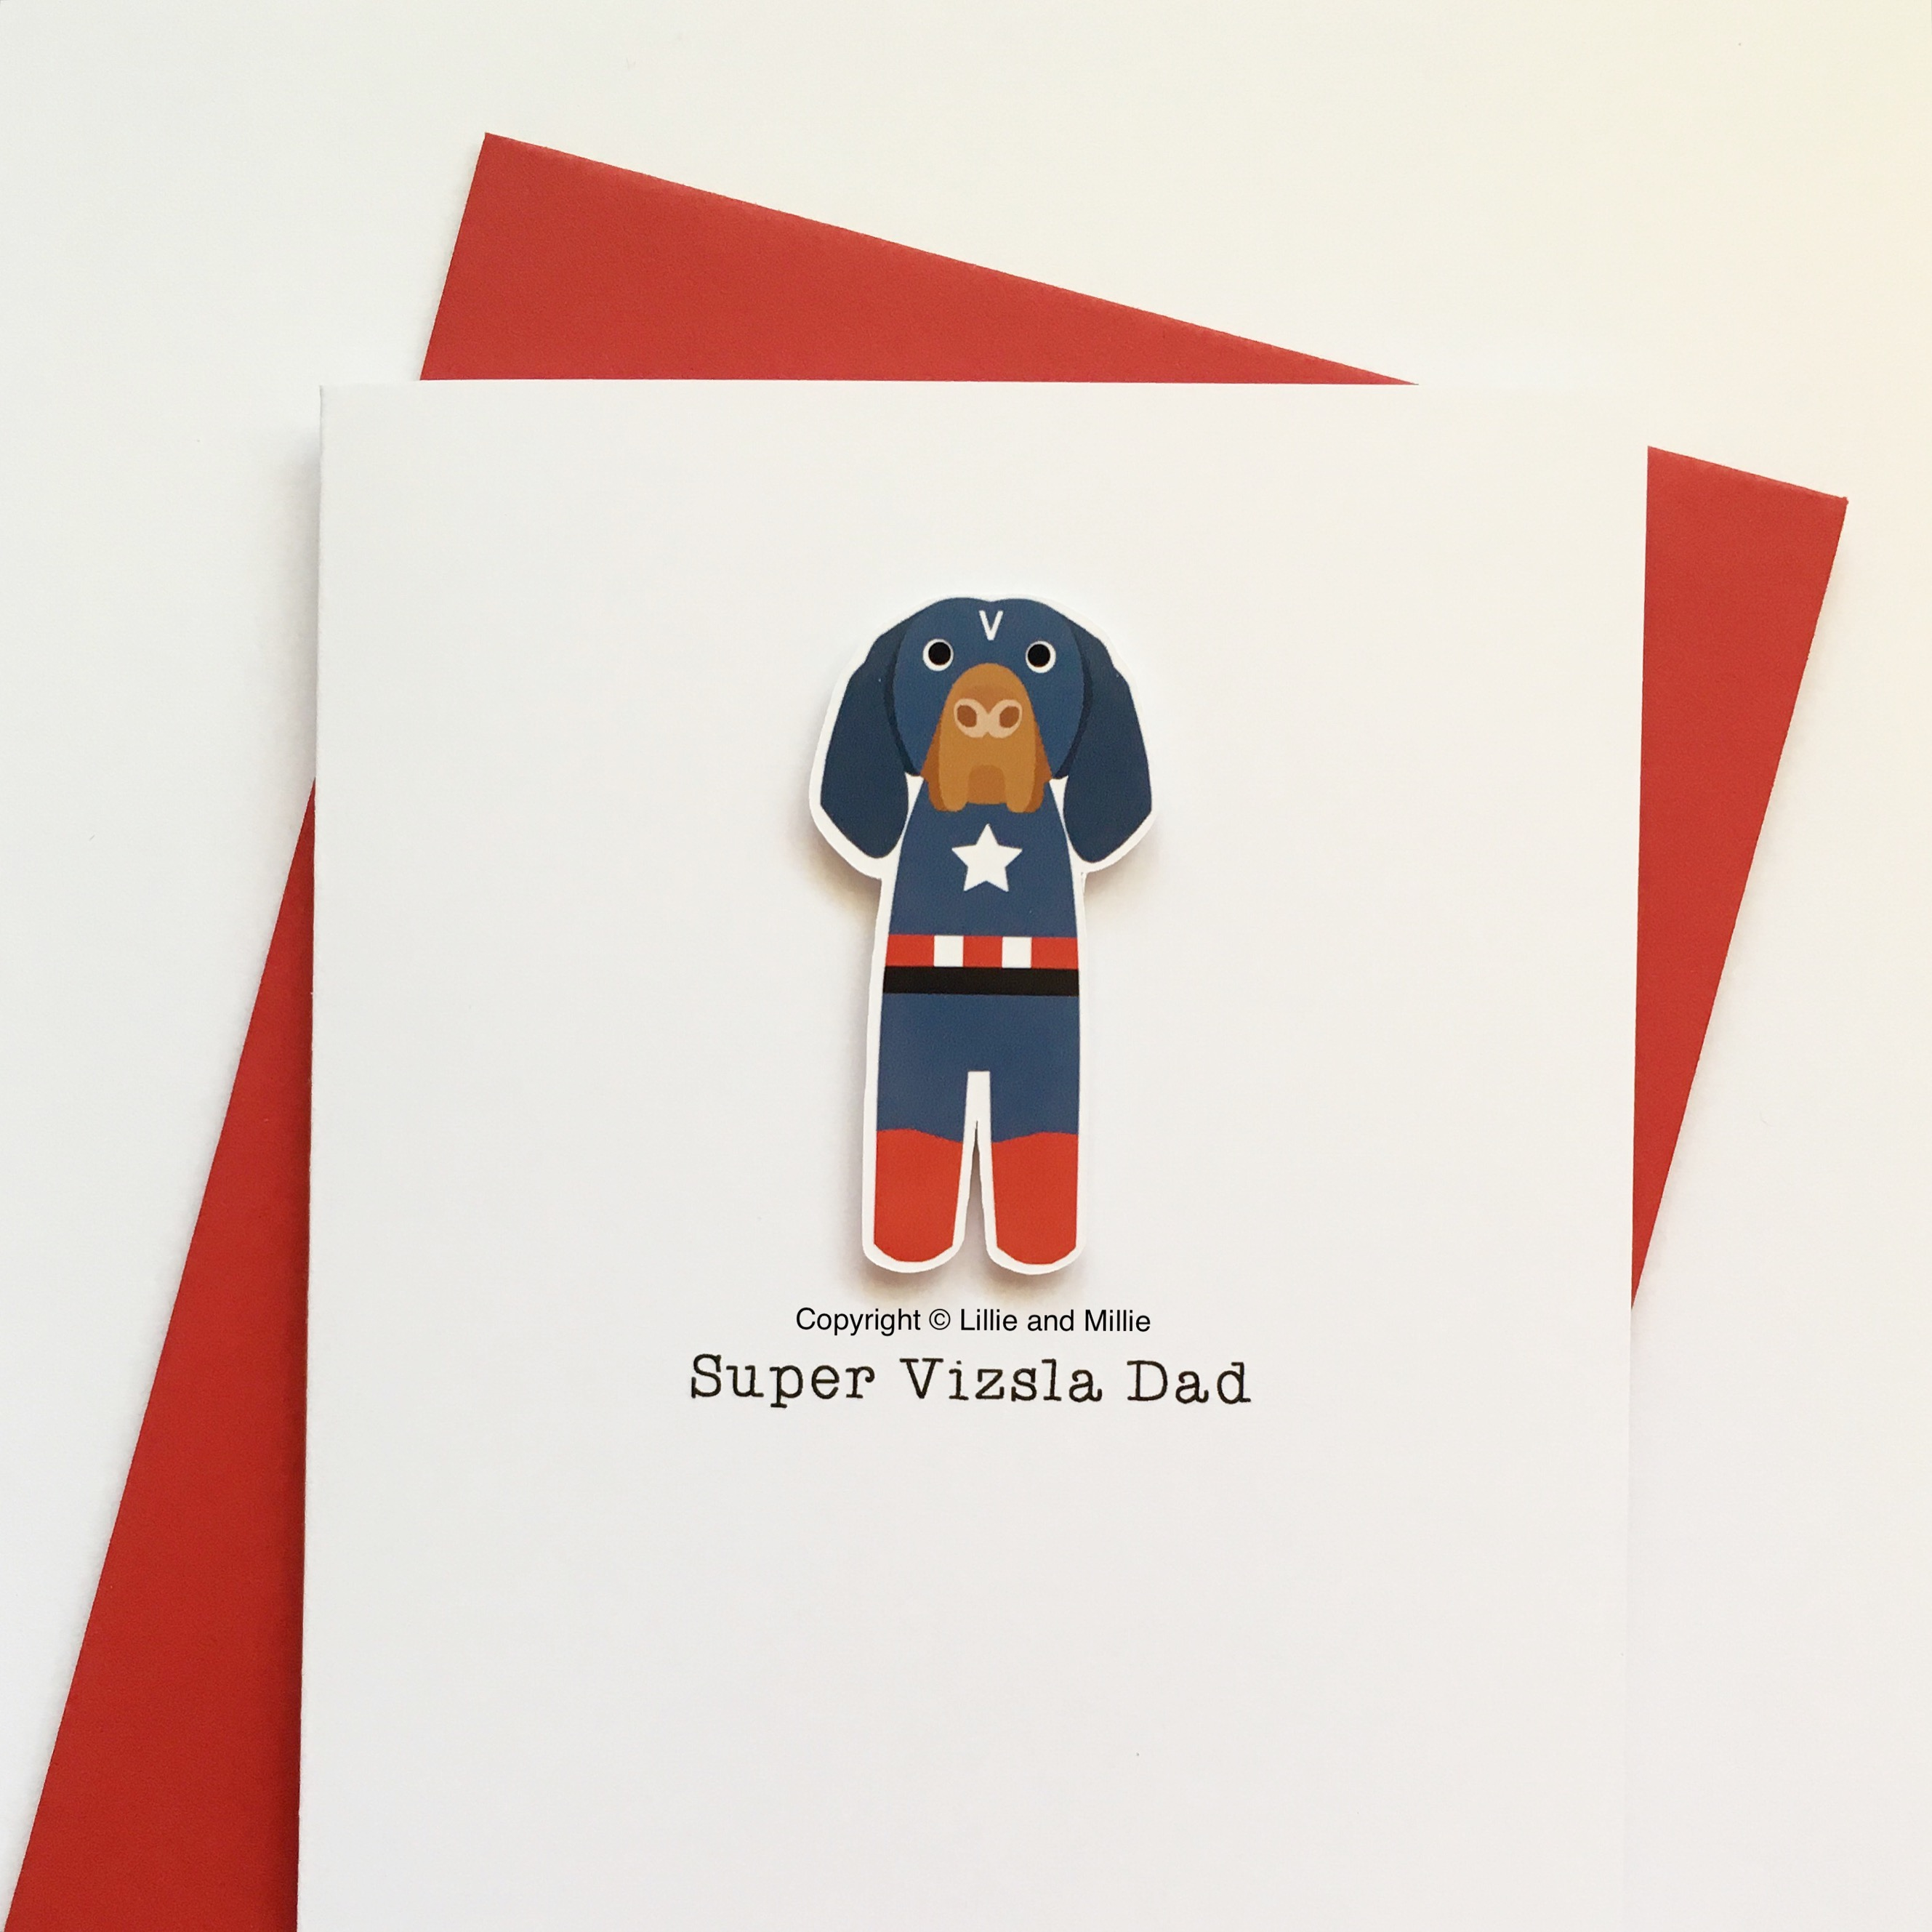 Precious Pooch Captain Vizsla Super Dad Card